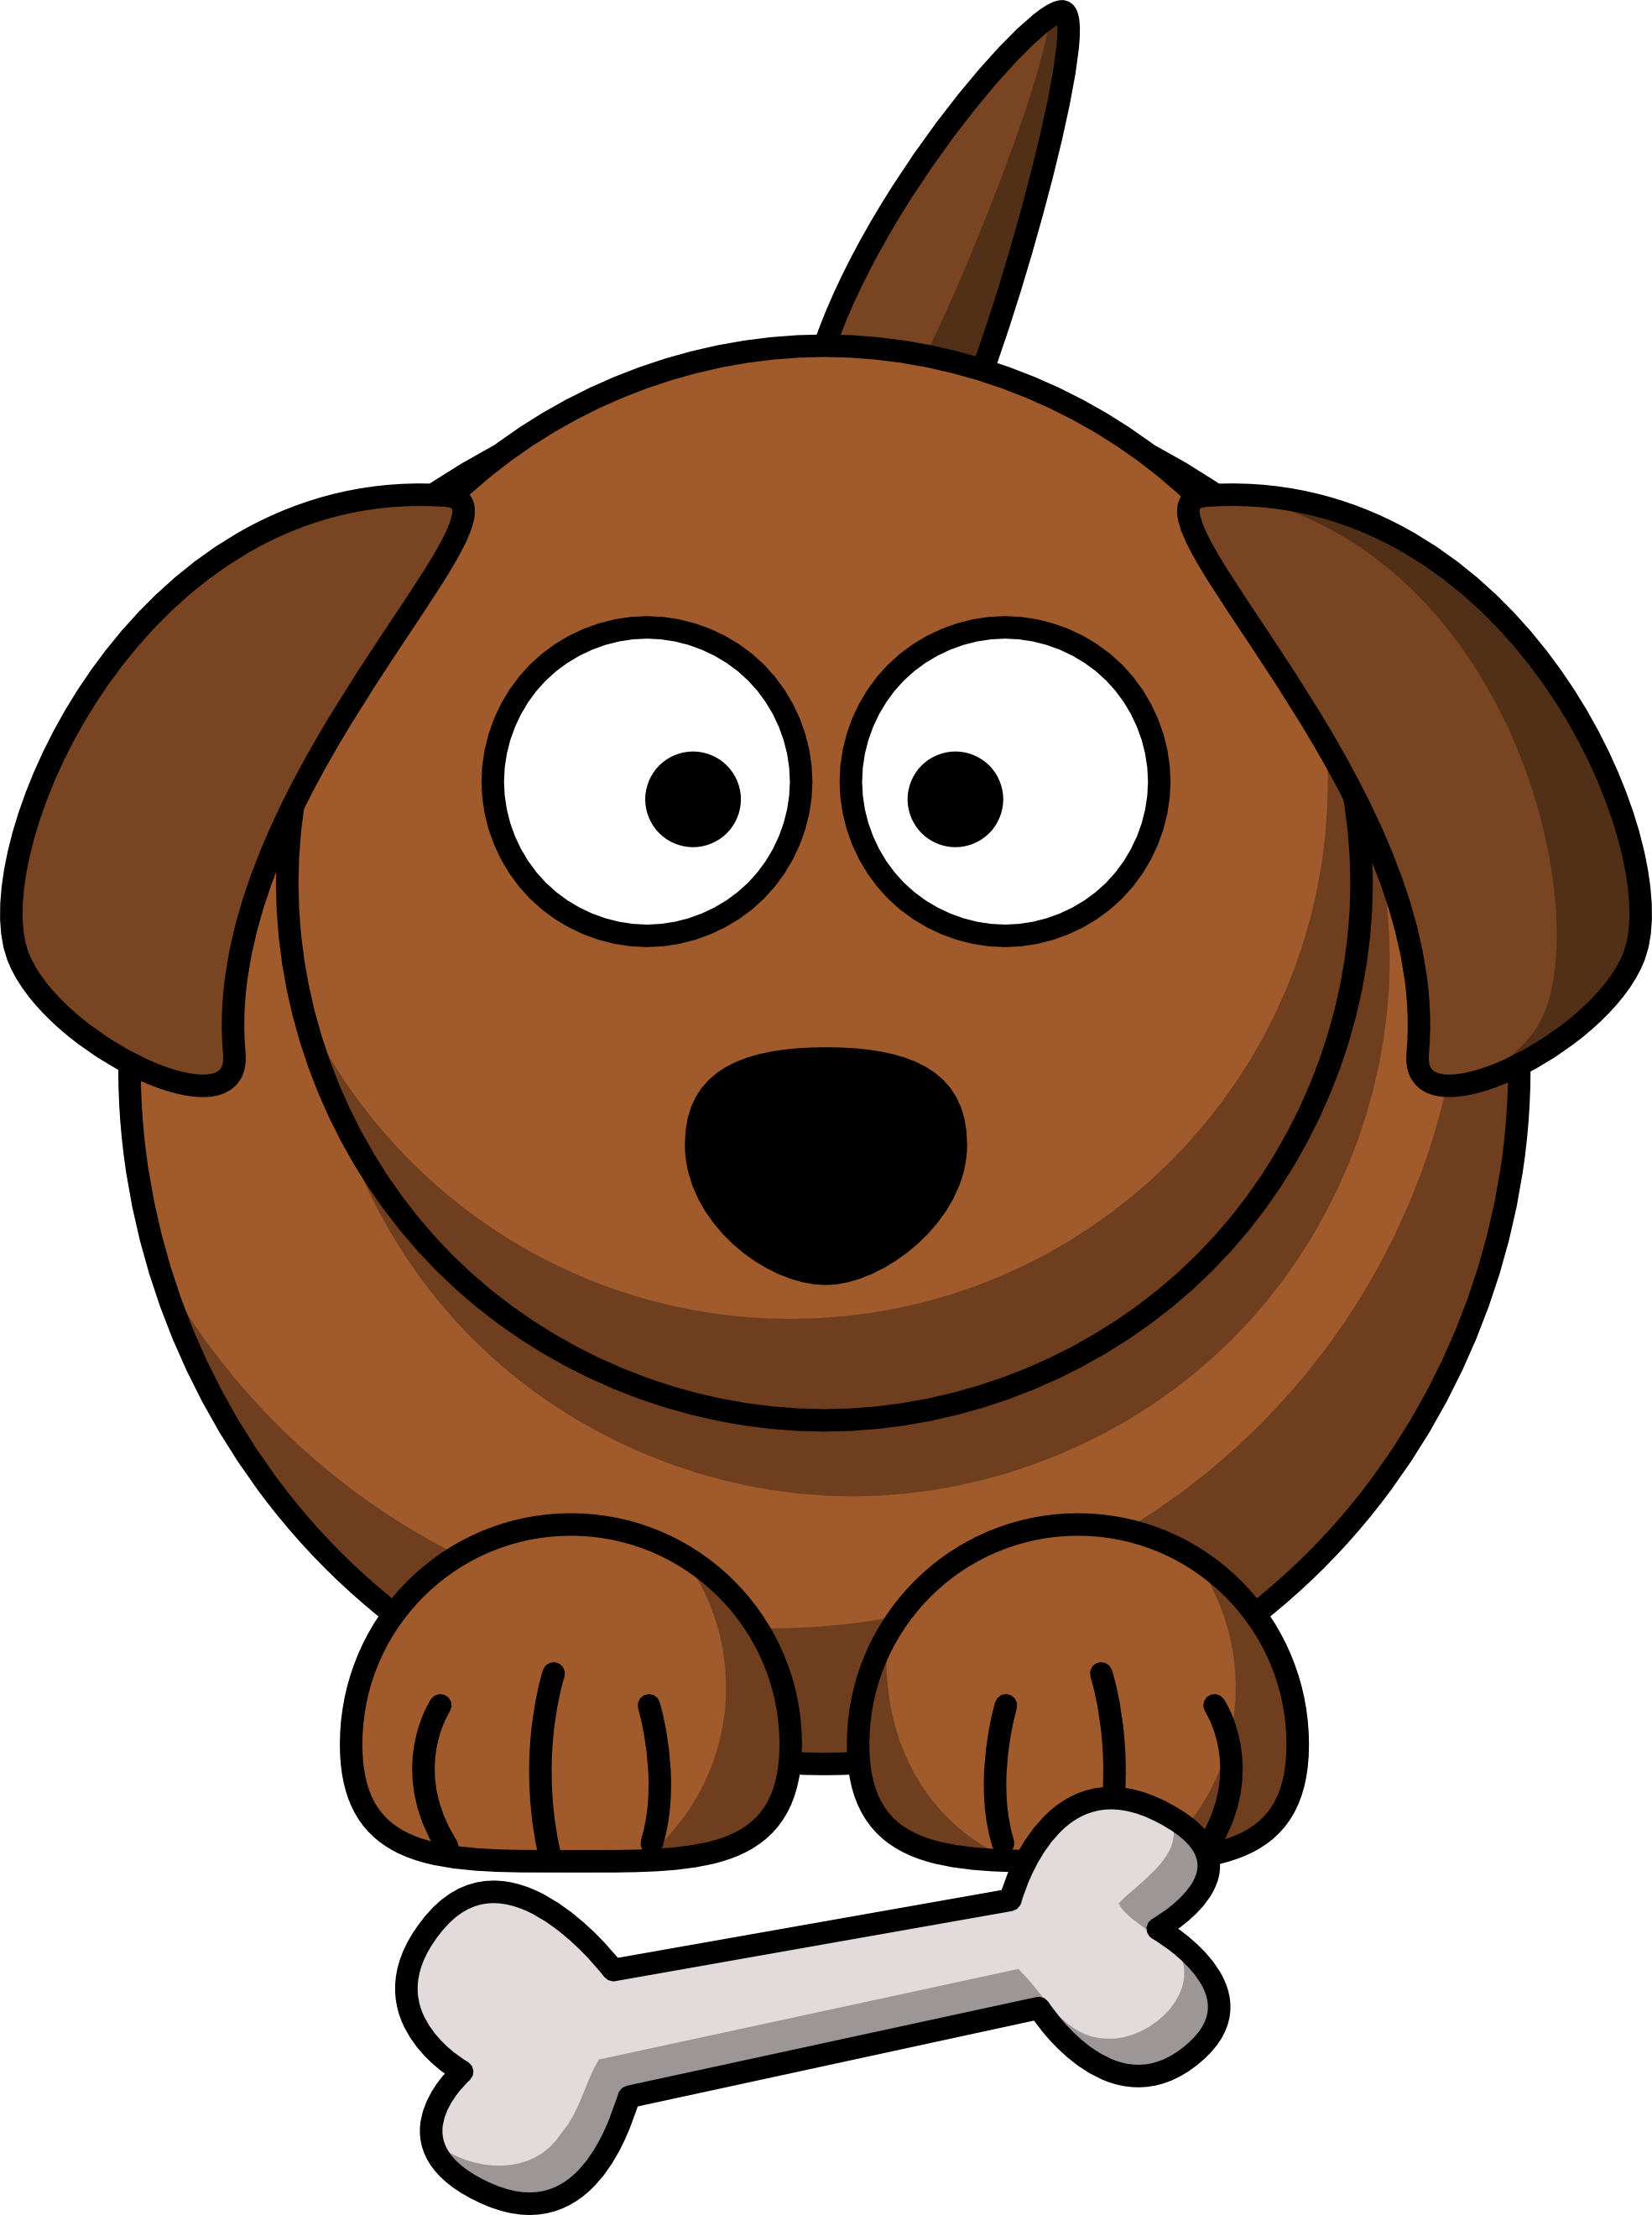 Clipart animal clip library download Free Animal Cartoon Pics, Download Free Clip Art, Free Clip Art on ... clip library download